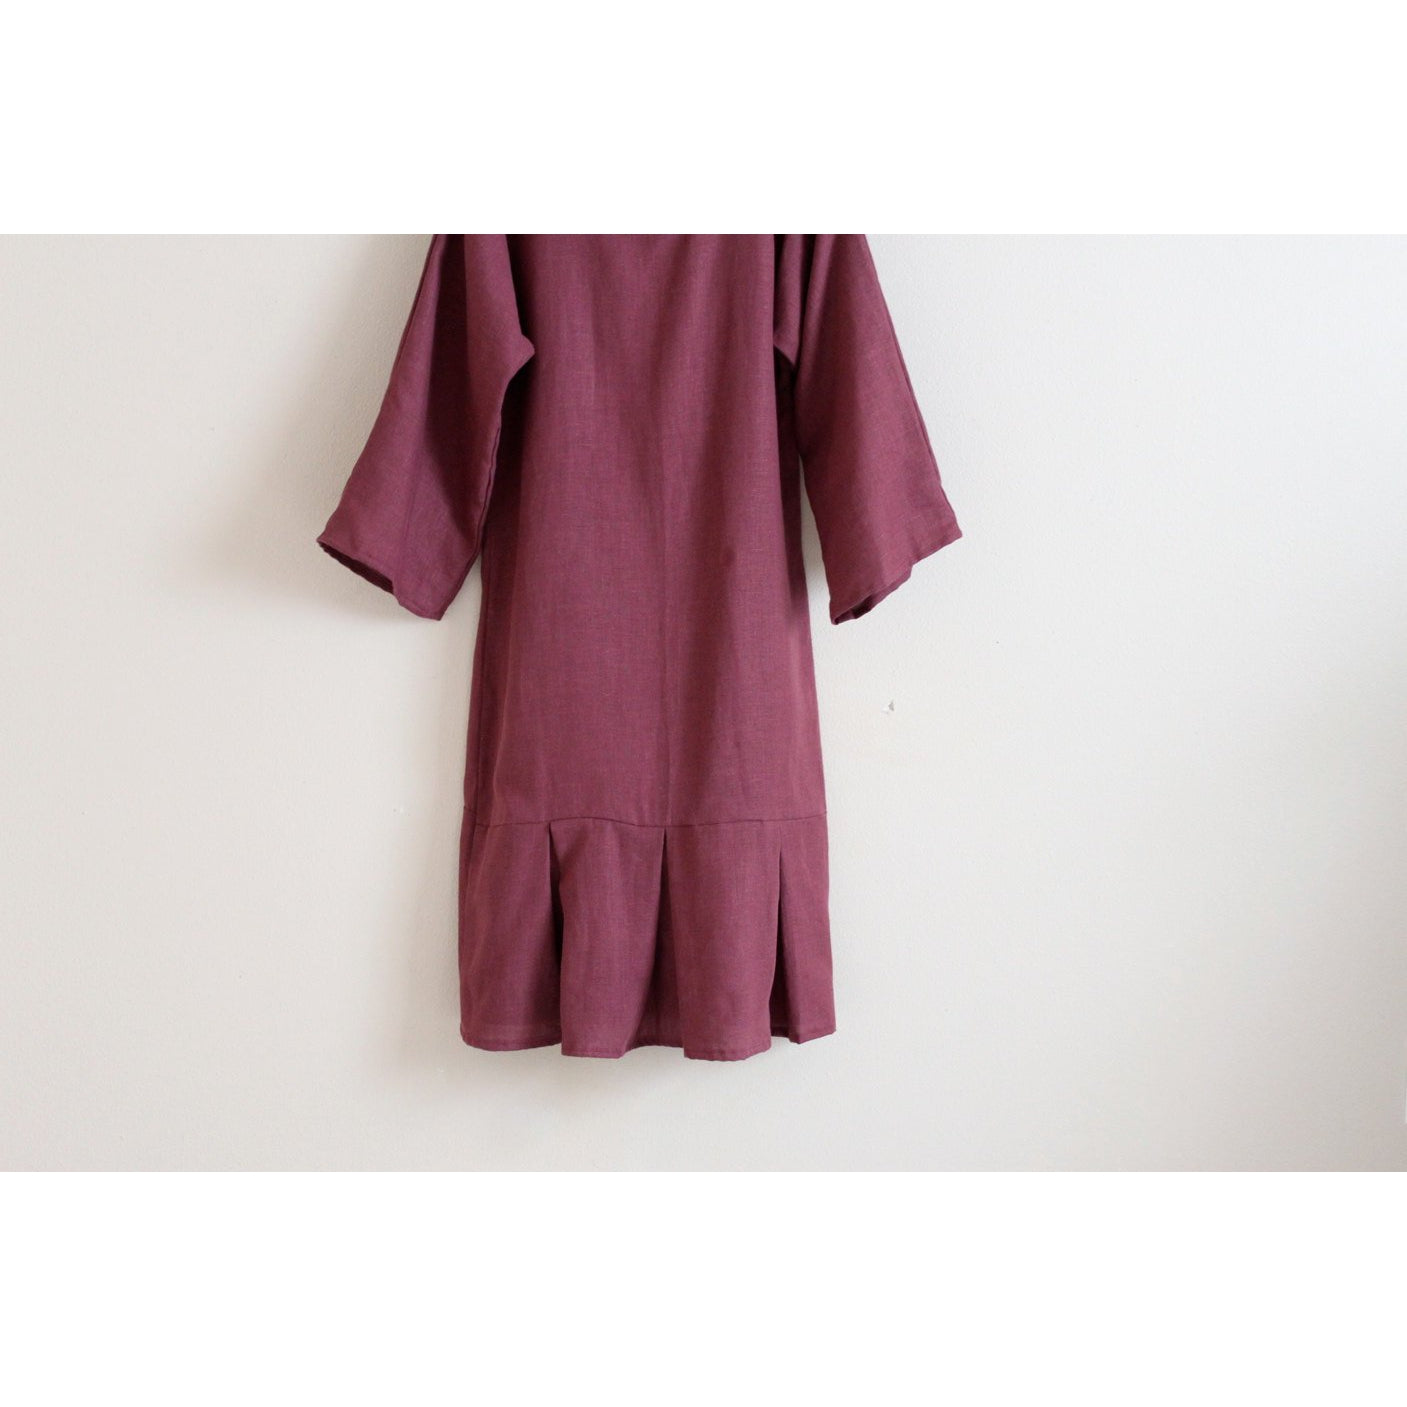 custom kimono sleeve mermaid tail linen dress